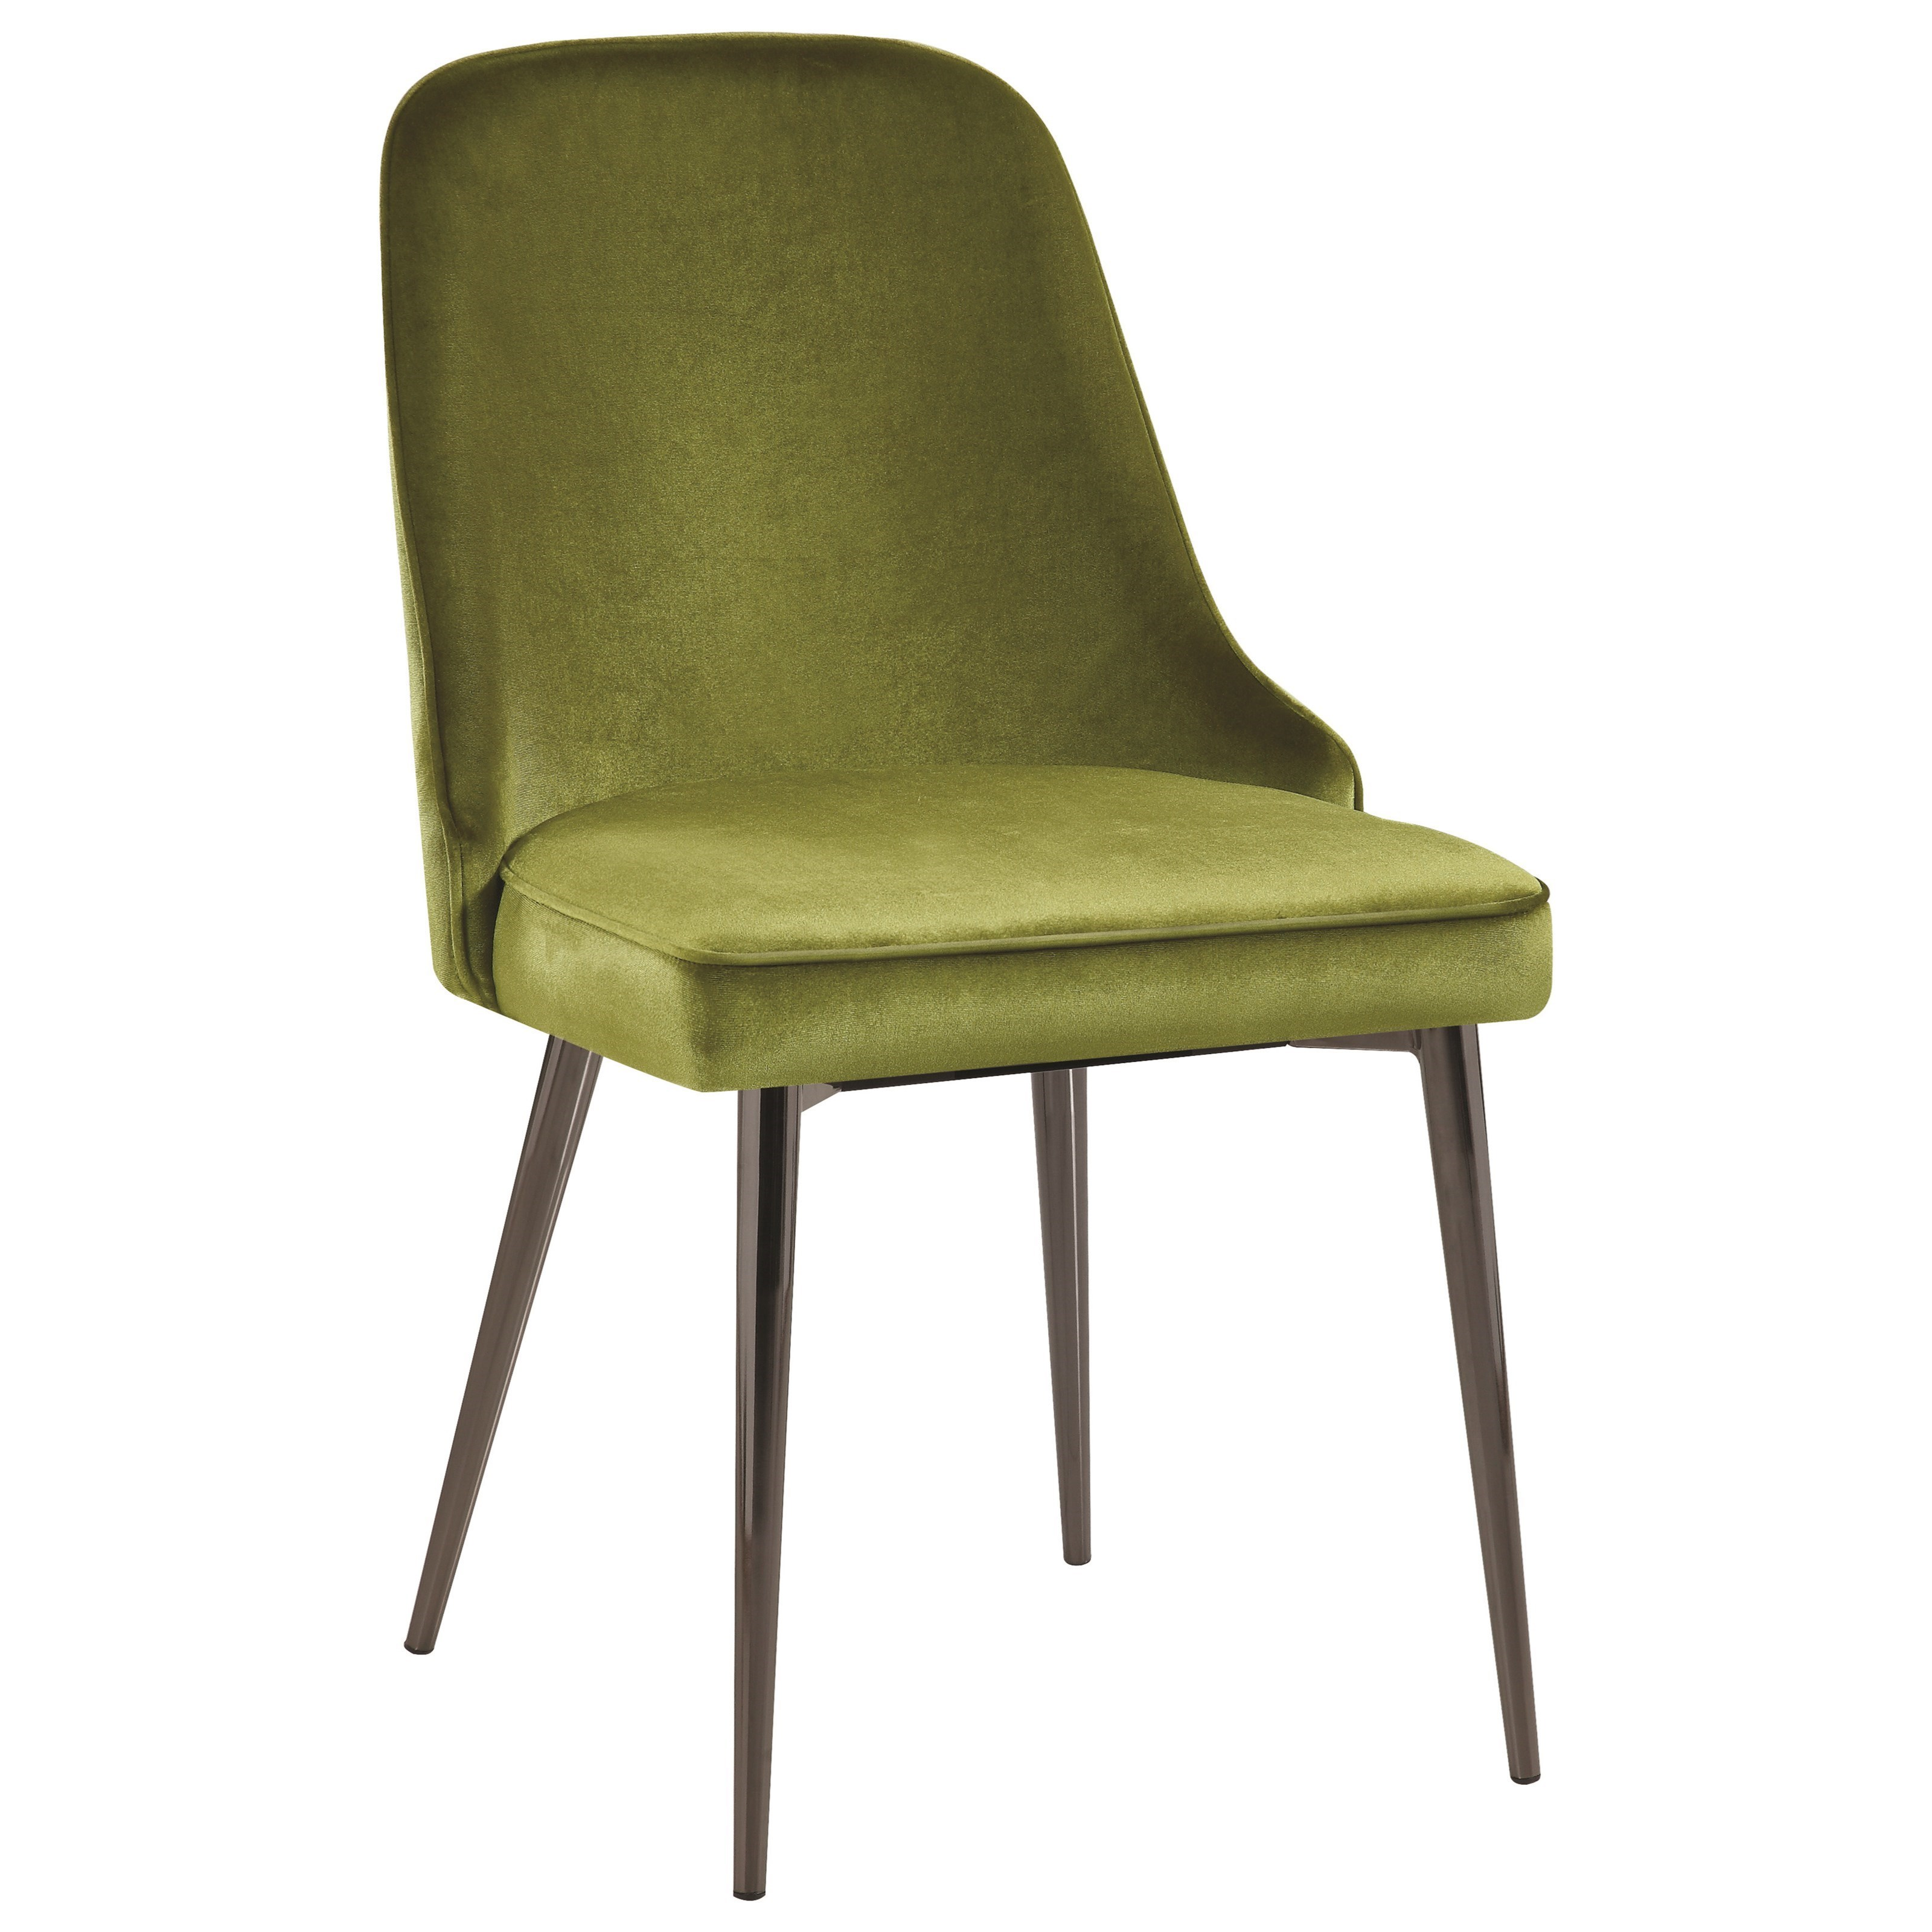 Scott Living 10795 Dining Chair - Item Number: 107952